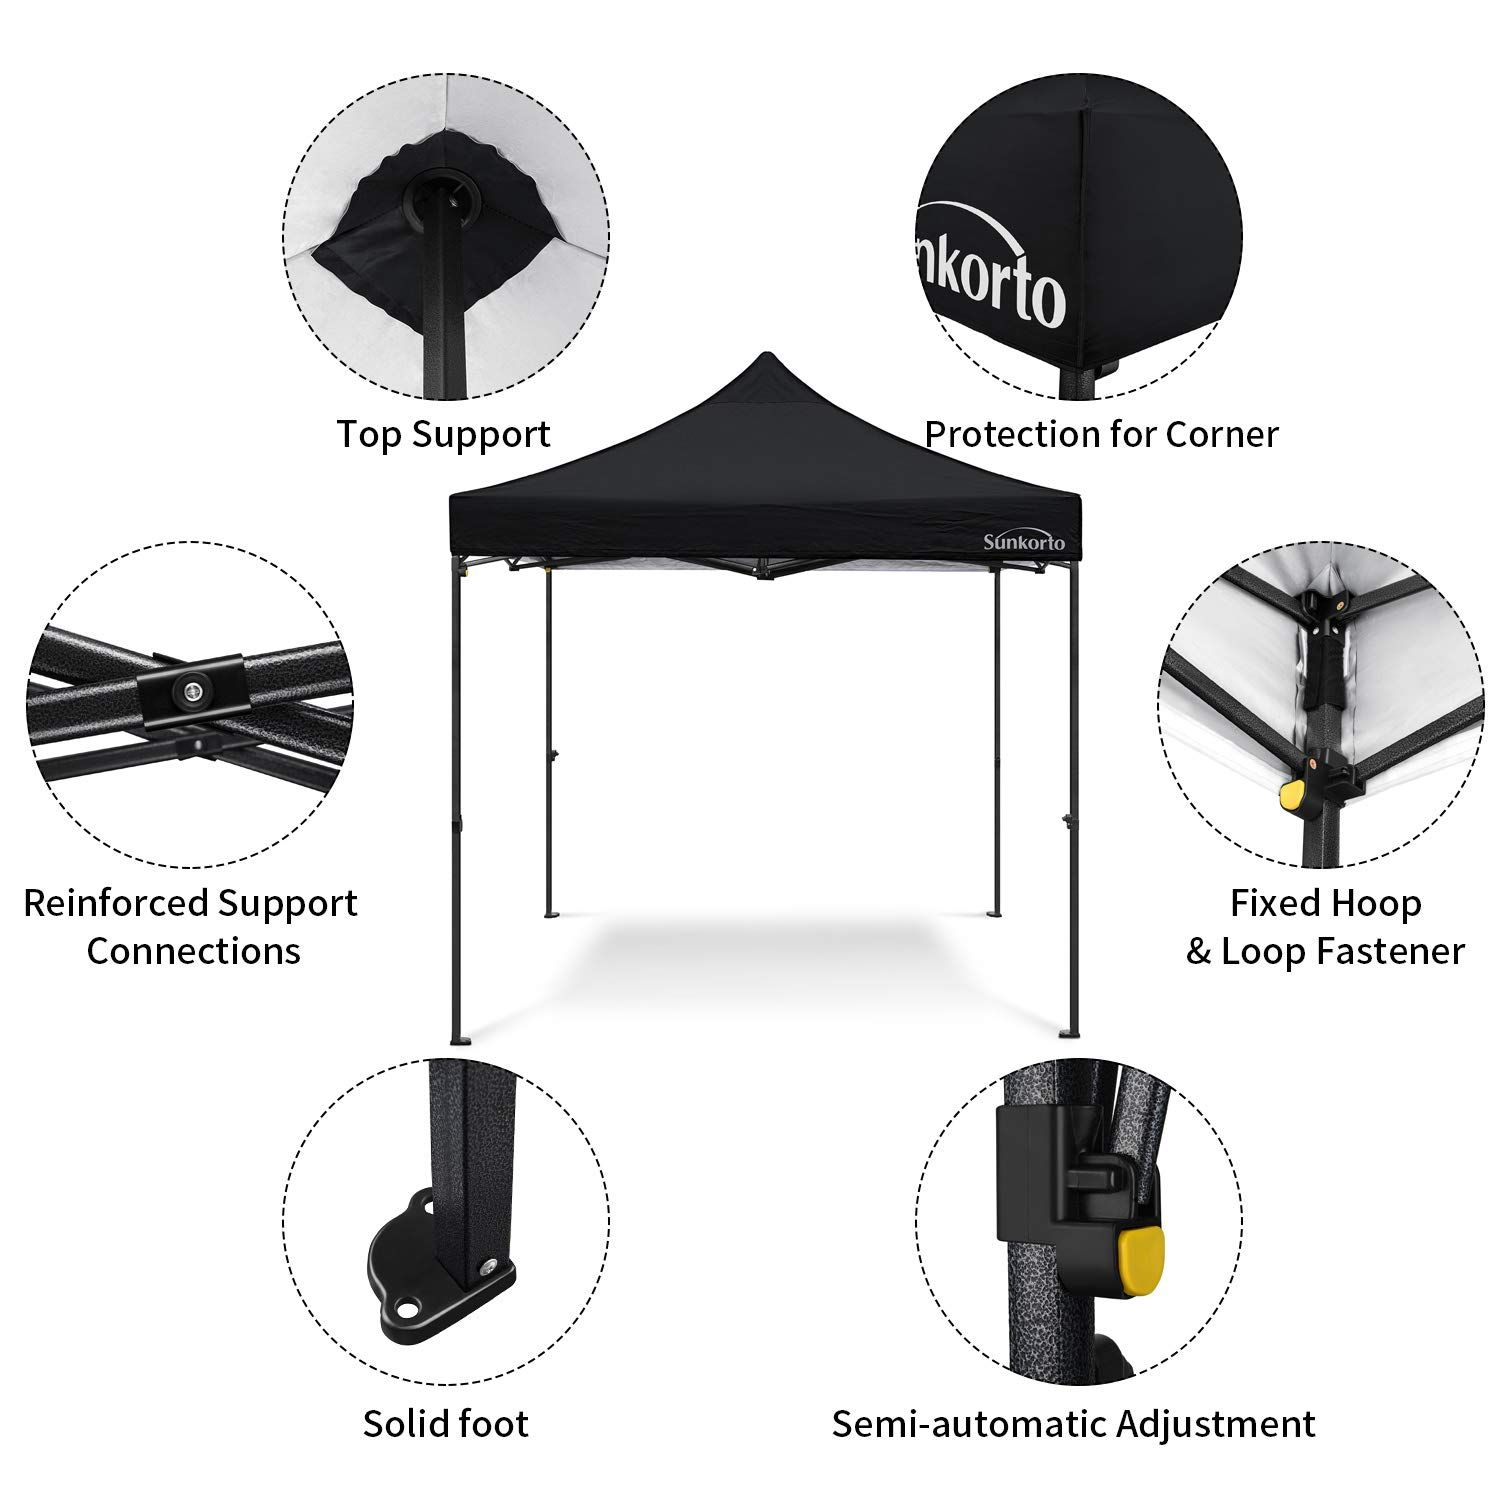 Sunkorto 10 10 Ft Pop Up Canopy Tent With 4 Weight Sand Bags Uv Protection Instant Shelter With Wheeled Carry Bag For Party Celebrations Outdoor Sports Or Co In 2020 Pop Up